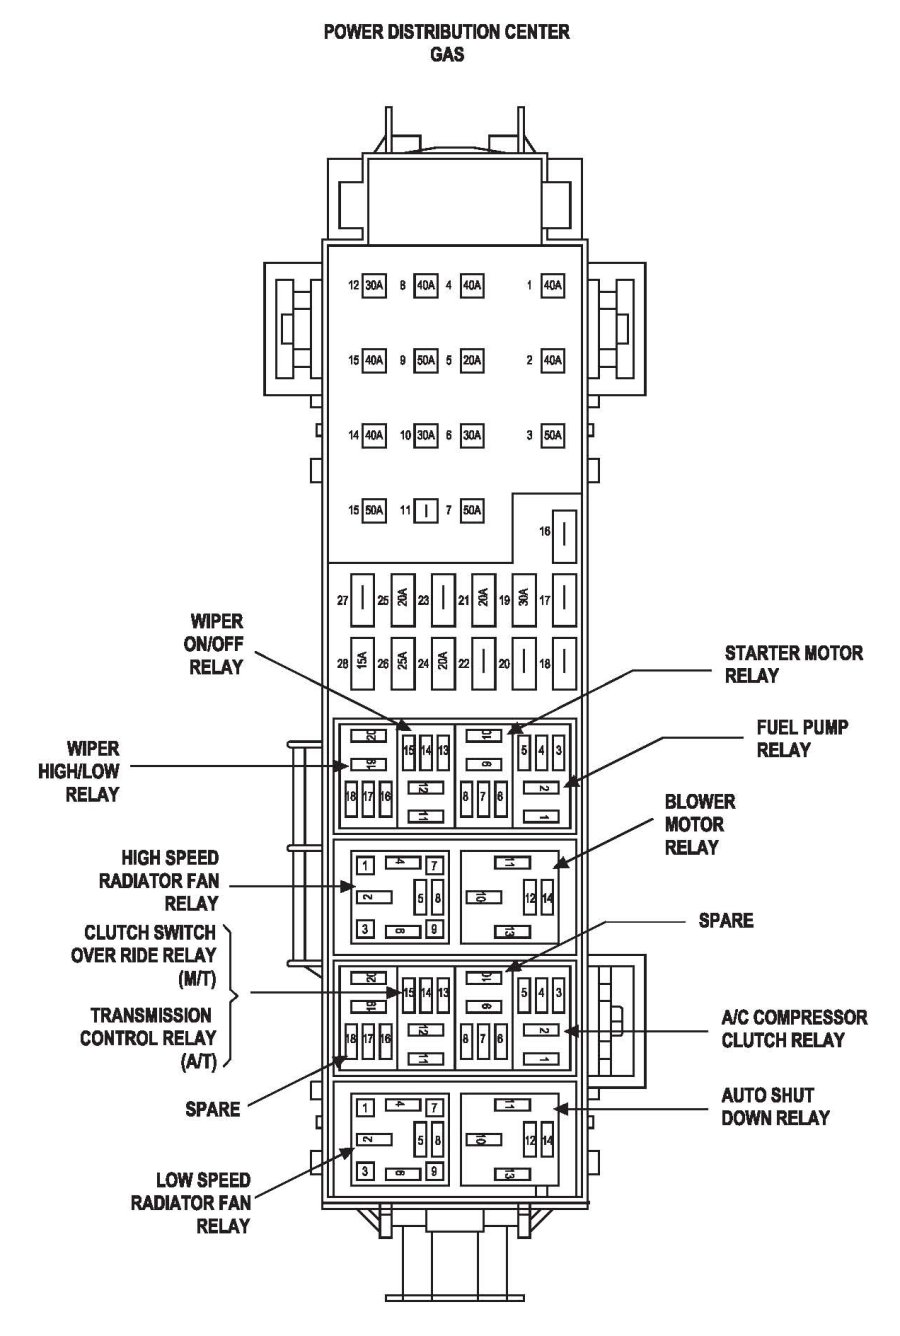 2010 jeep wrangler wiring diagram dpdt relay liberty fuse box location schema 2011 detailed 2005